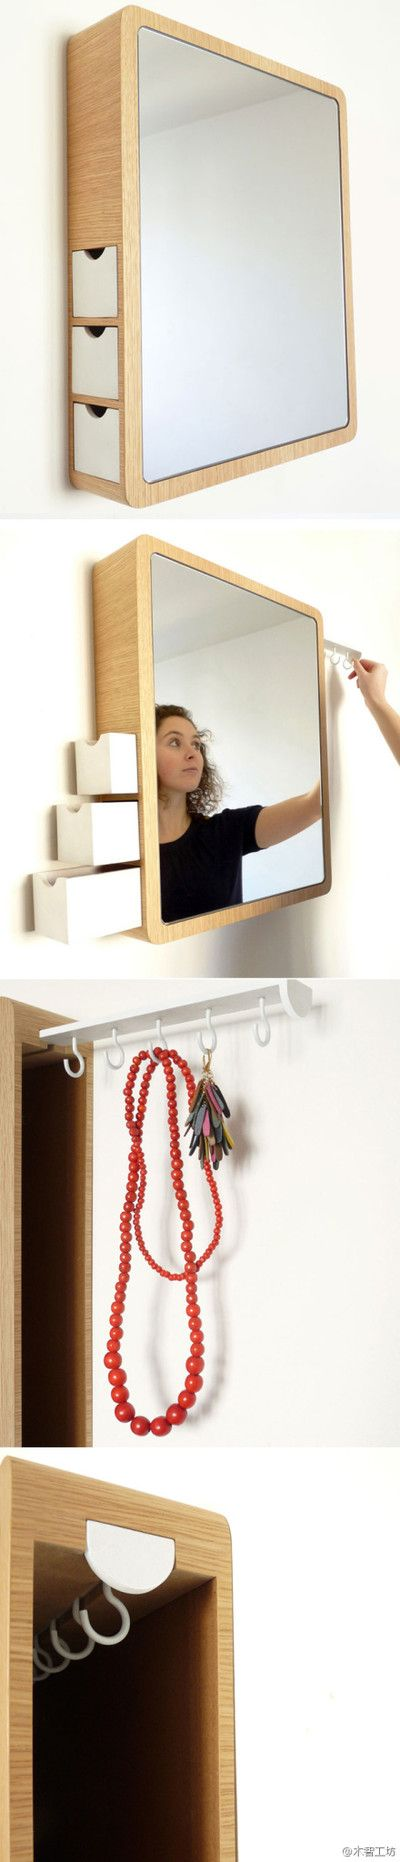 25 best ideas about toothbrush holders on pinterest - Bathroom mirror with hidden storage ...